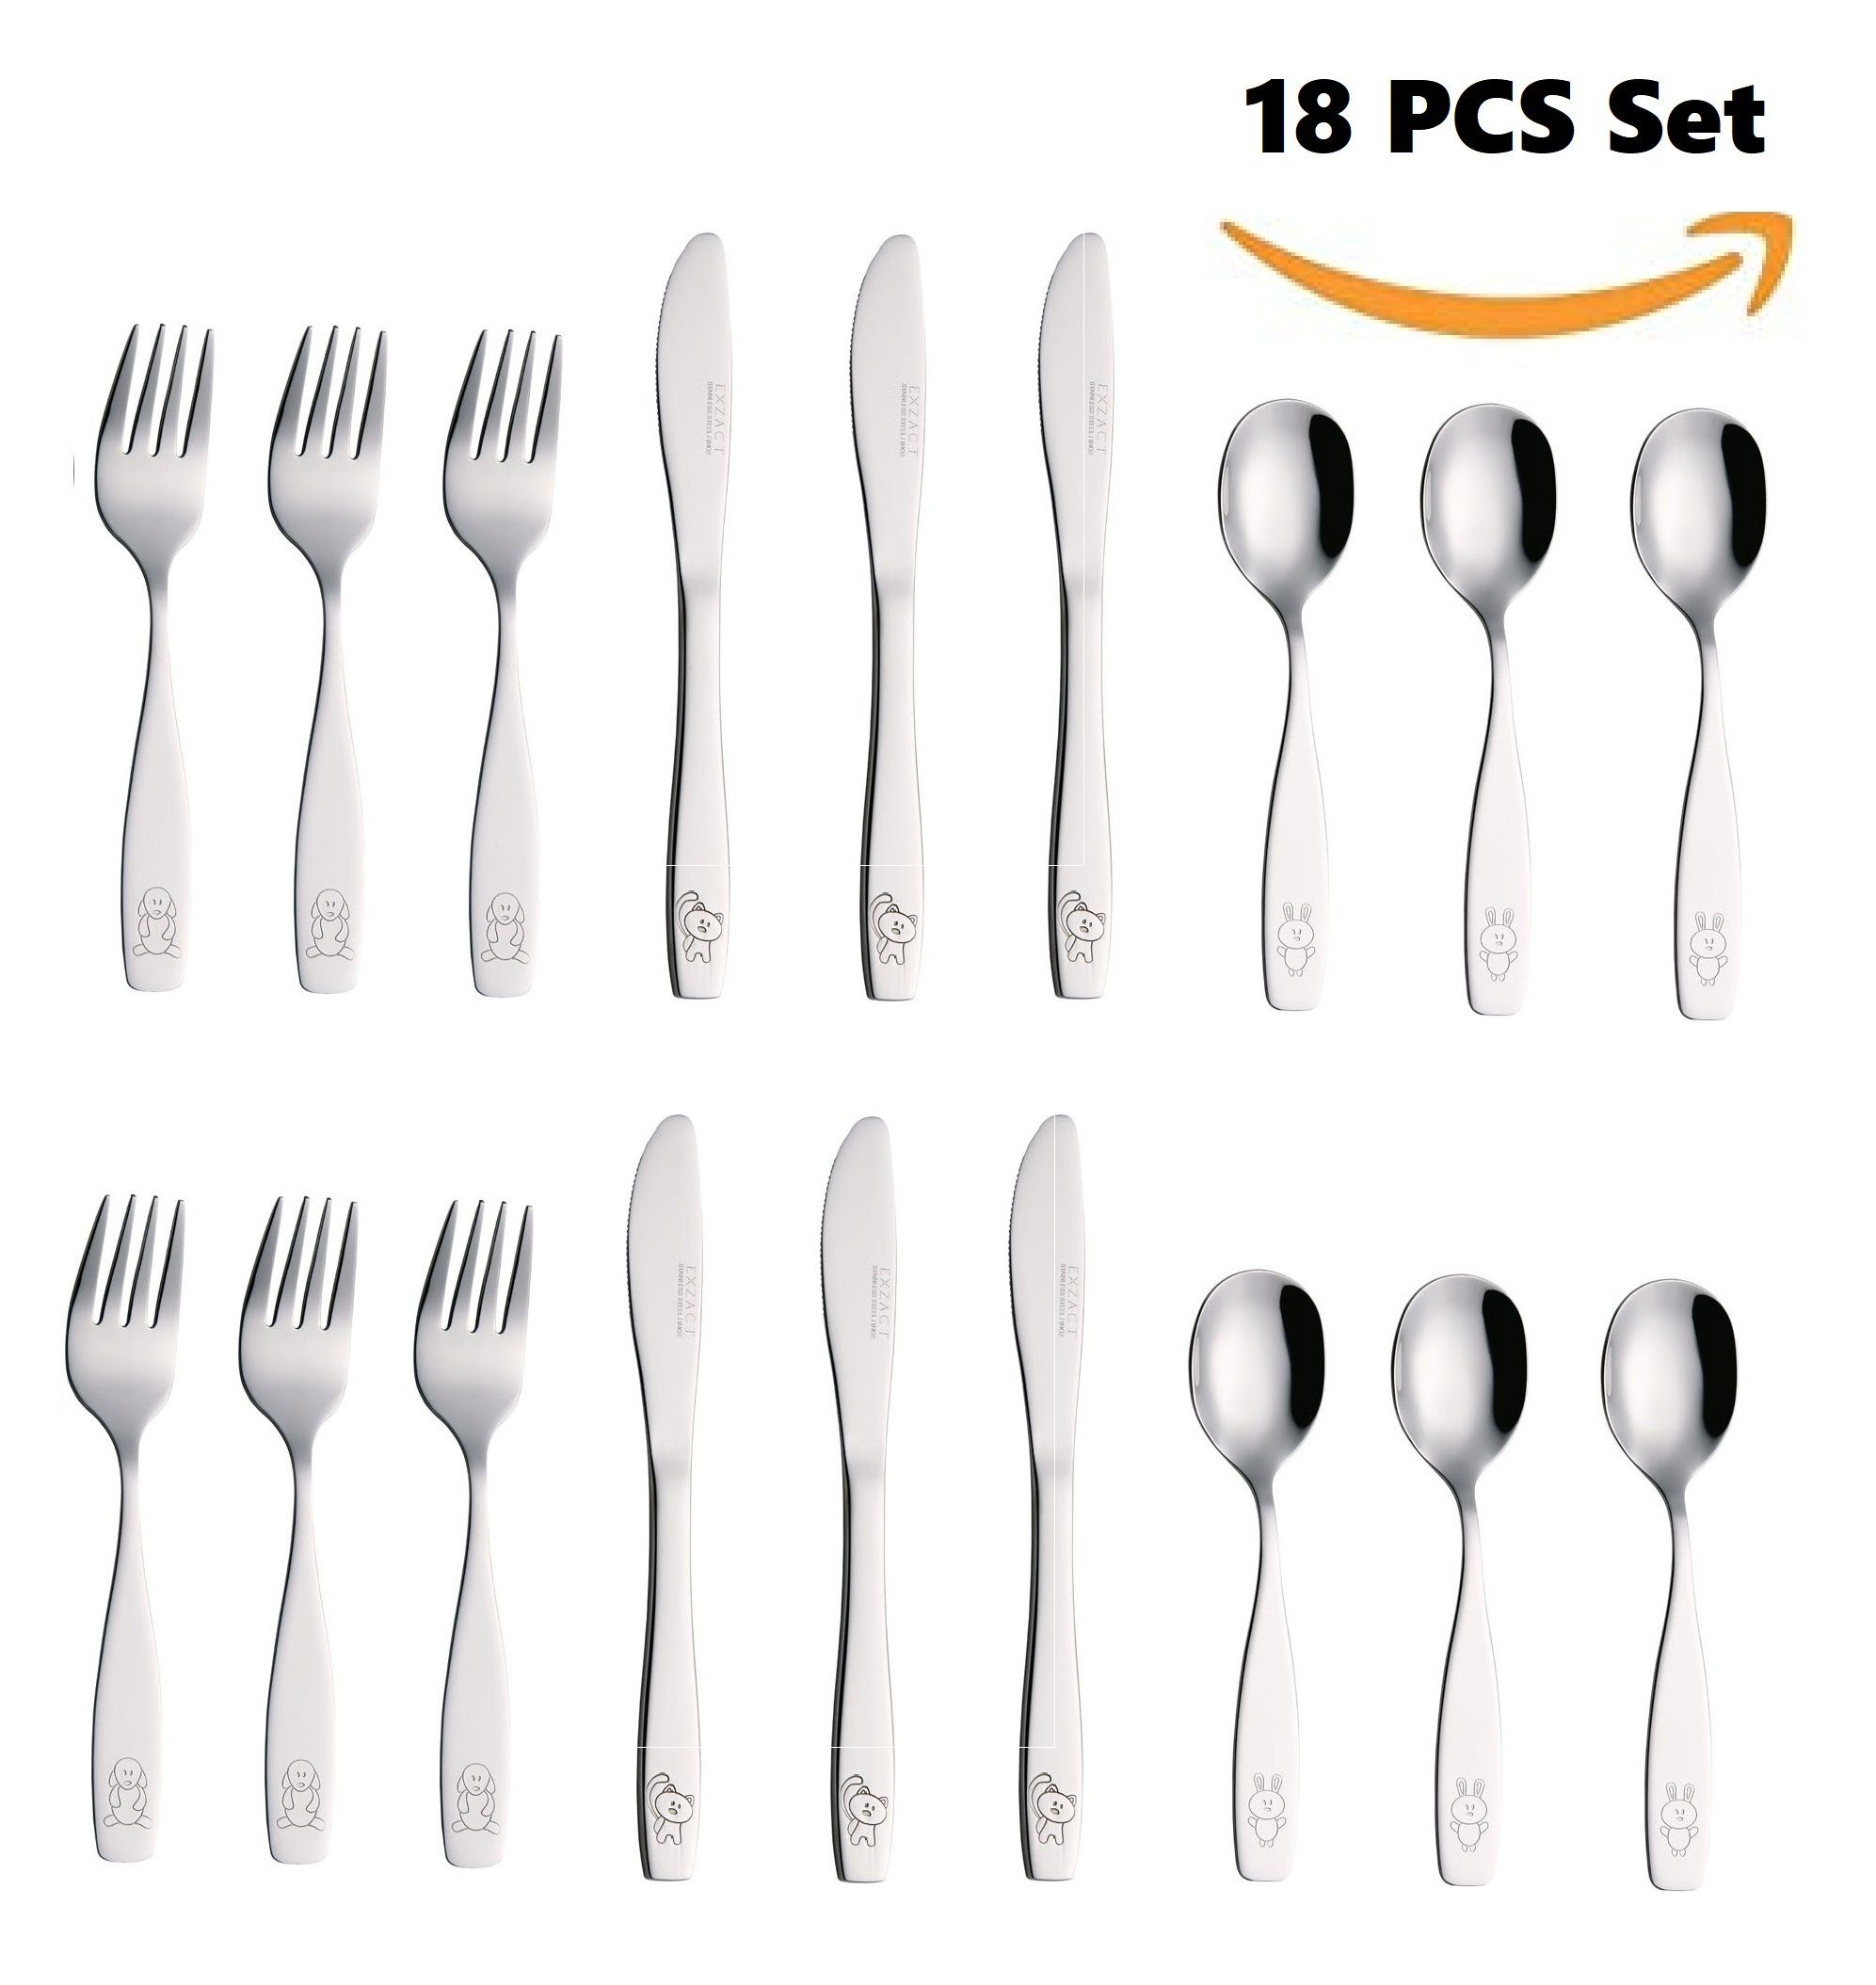 Exzact Stainless Steel 18 PCS Childrens Flatware/Cutlery Set - 6 x Forks, 6 x Safe dinnerknives, 6 x Dinner Spoons - Dog Cat Bunny Design by Exzact (Image #2)